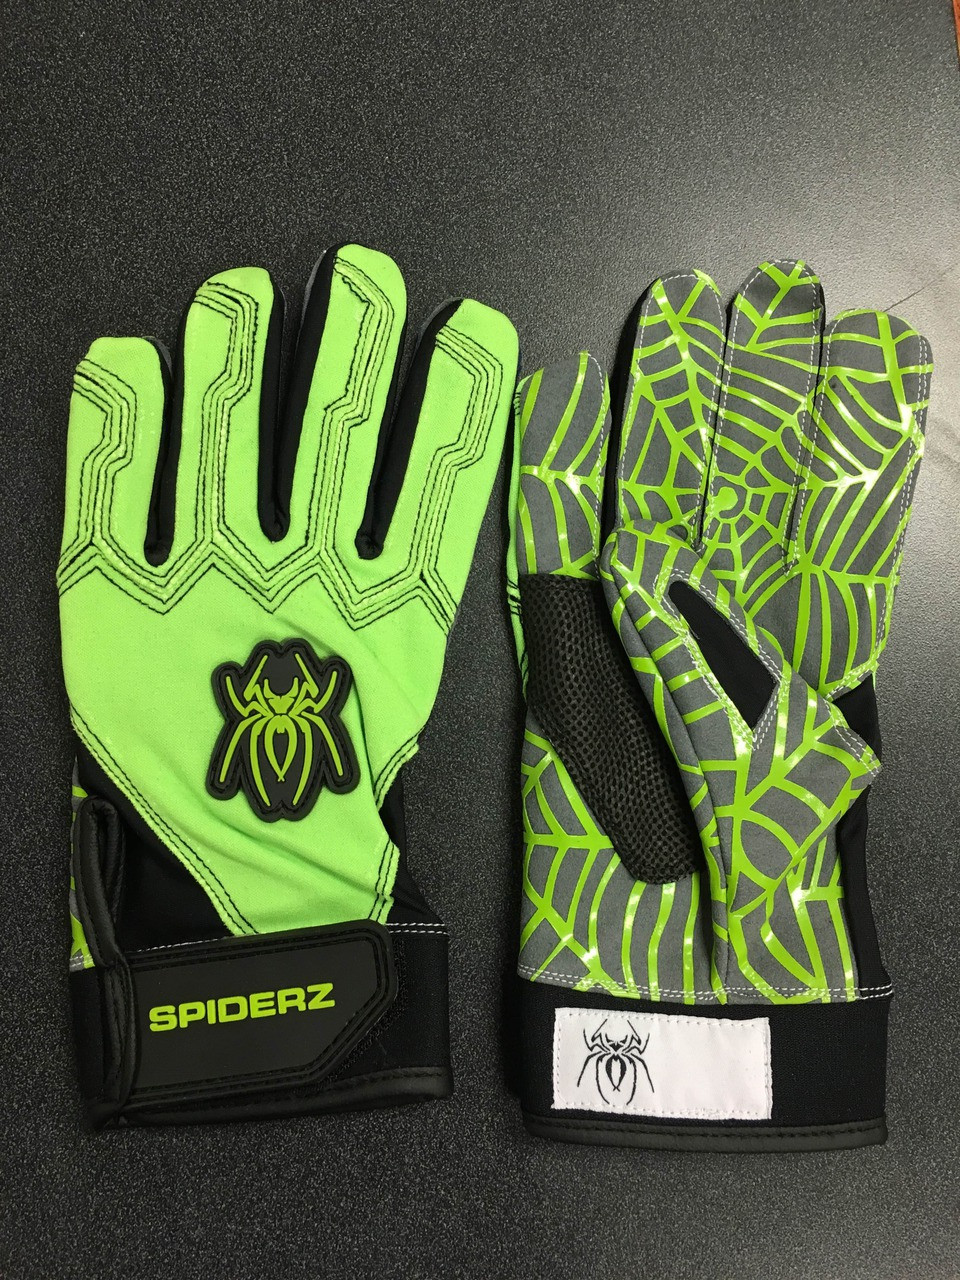 green and black batting gloves